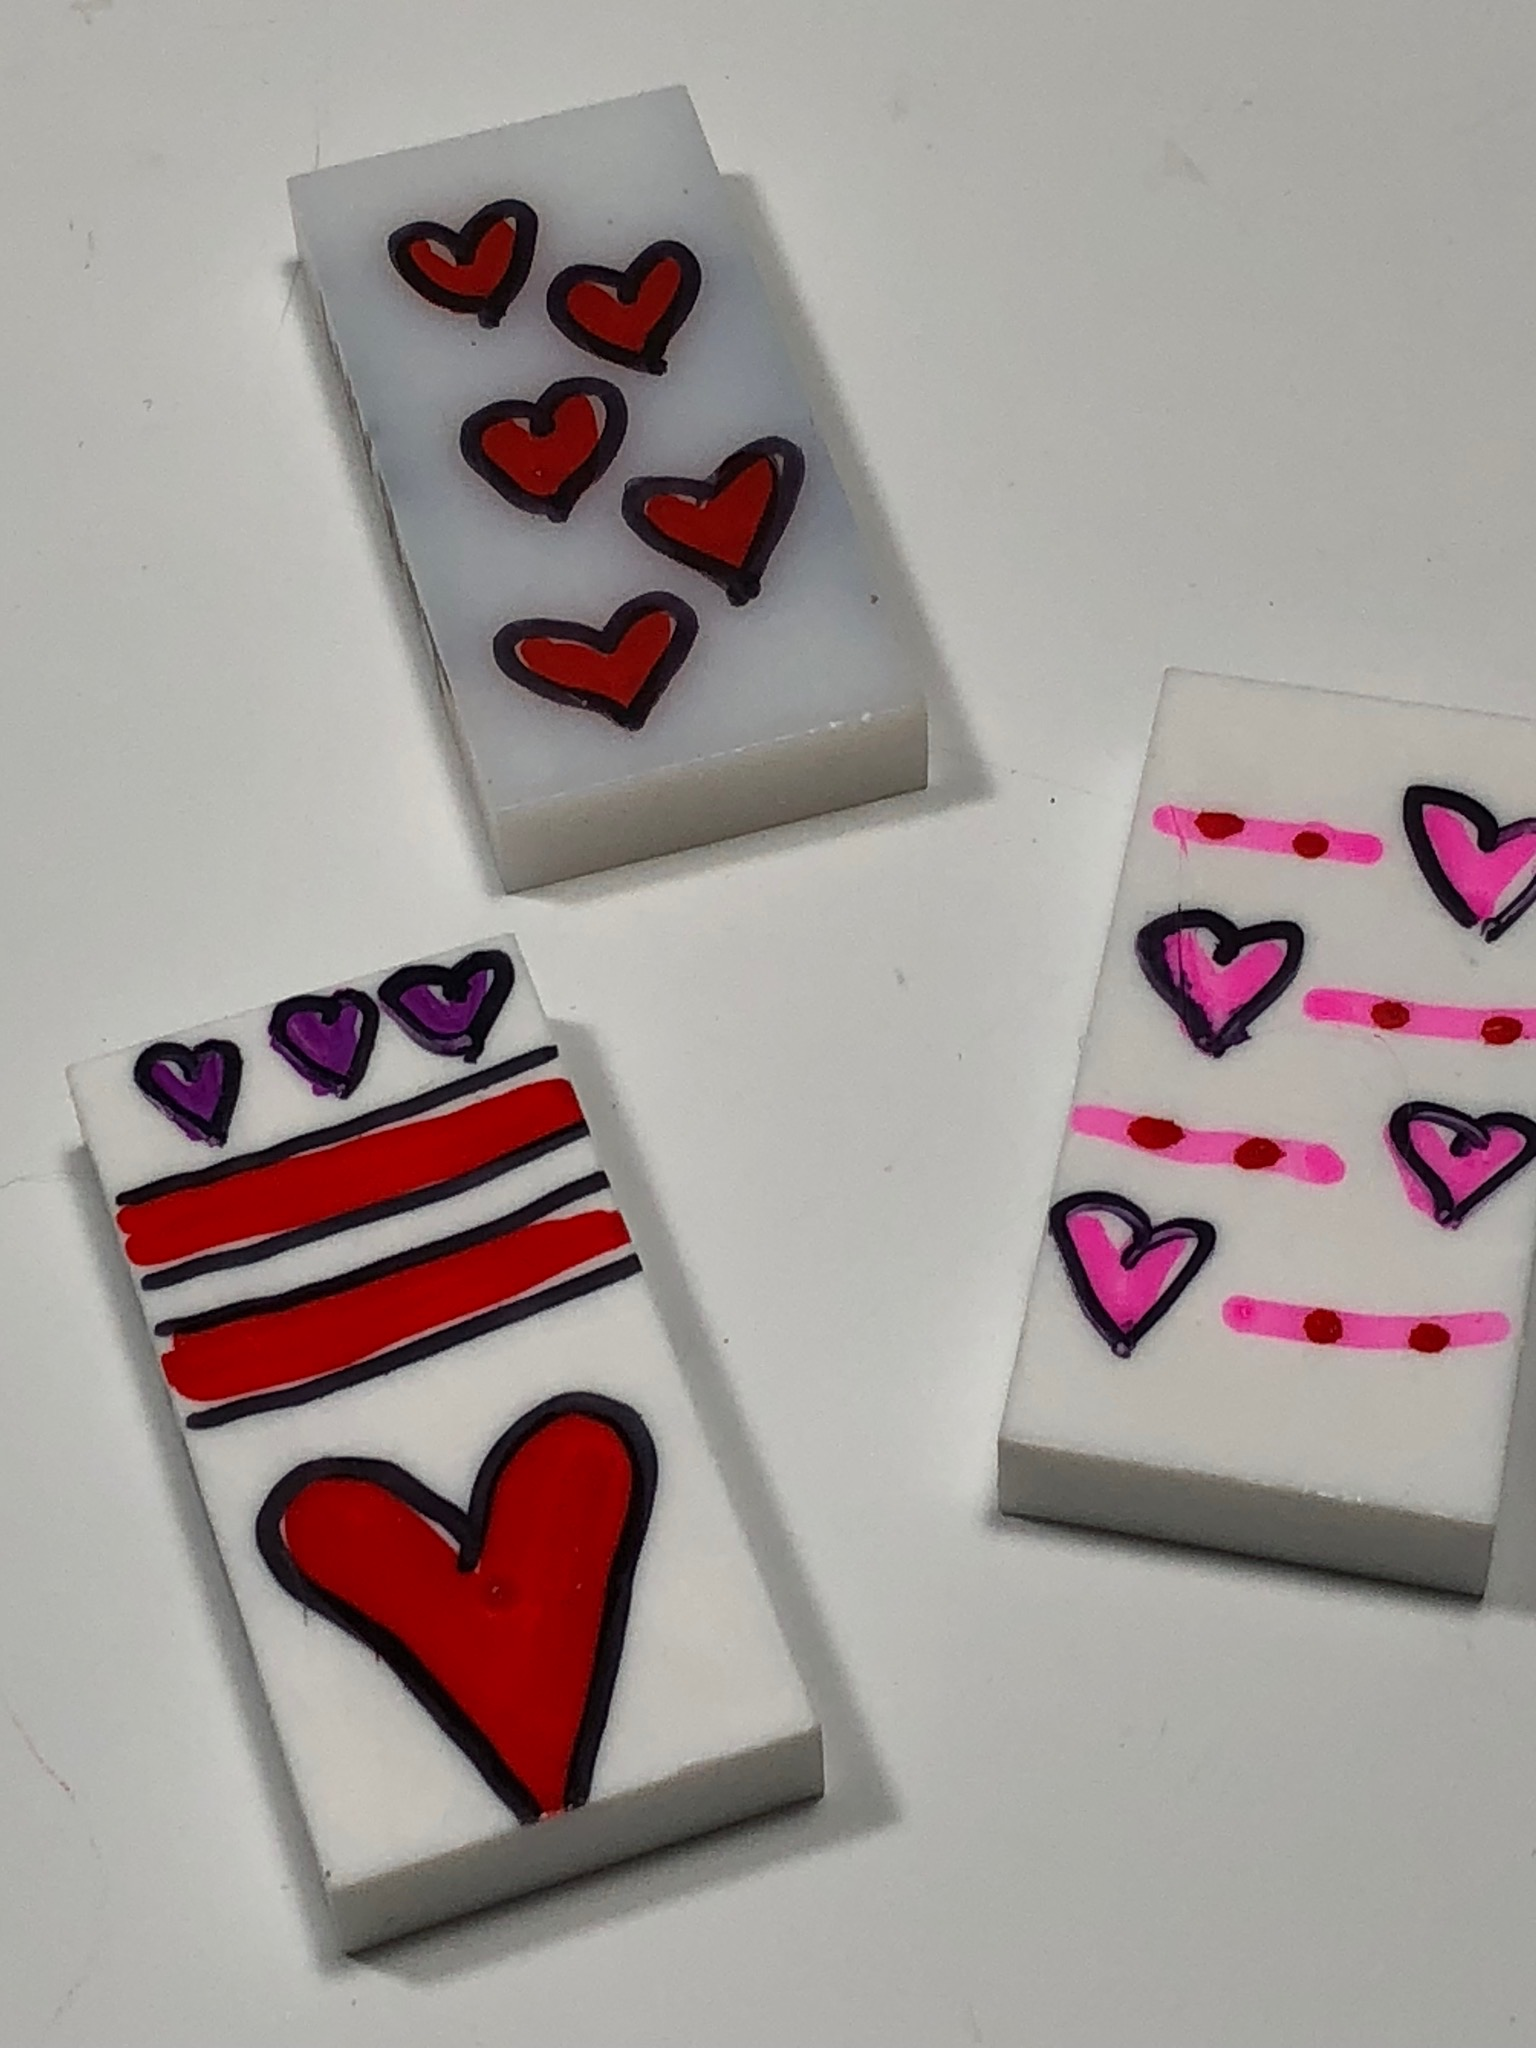 Do you remember these? I made these 'LUVBOTS' for my valentines in February 2014. They were the subject of one of my very first blog entries. As always, I love to hear your feedback. Click the photo to send me a message!